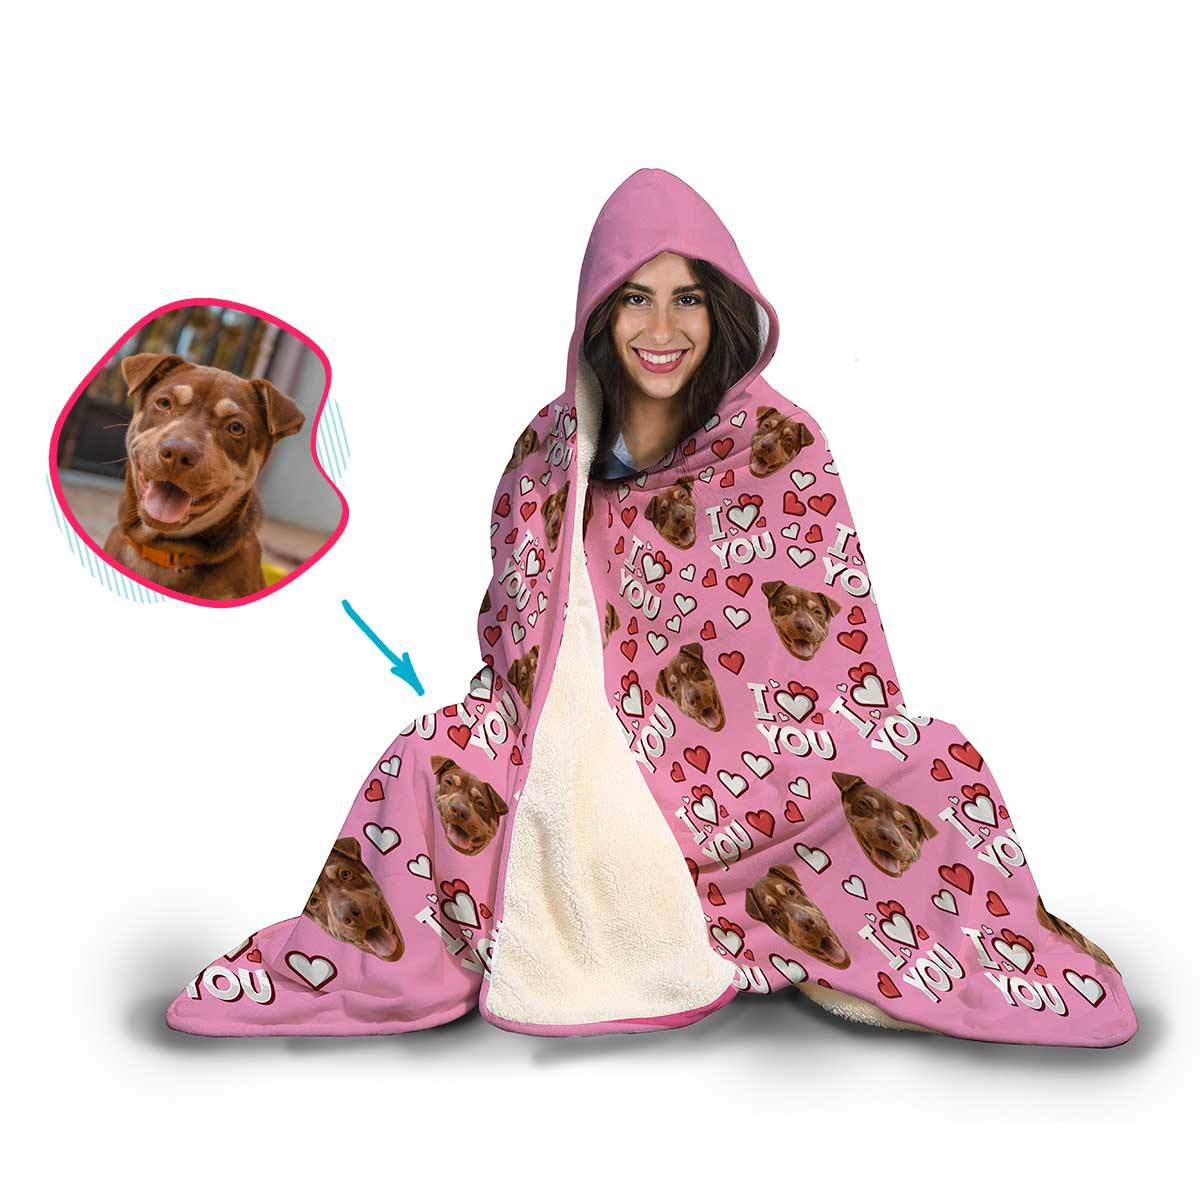 I Love You Personalized Hooded Blanket